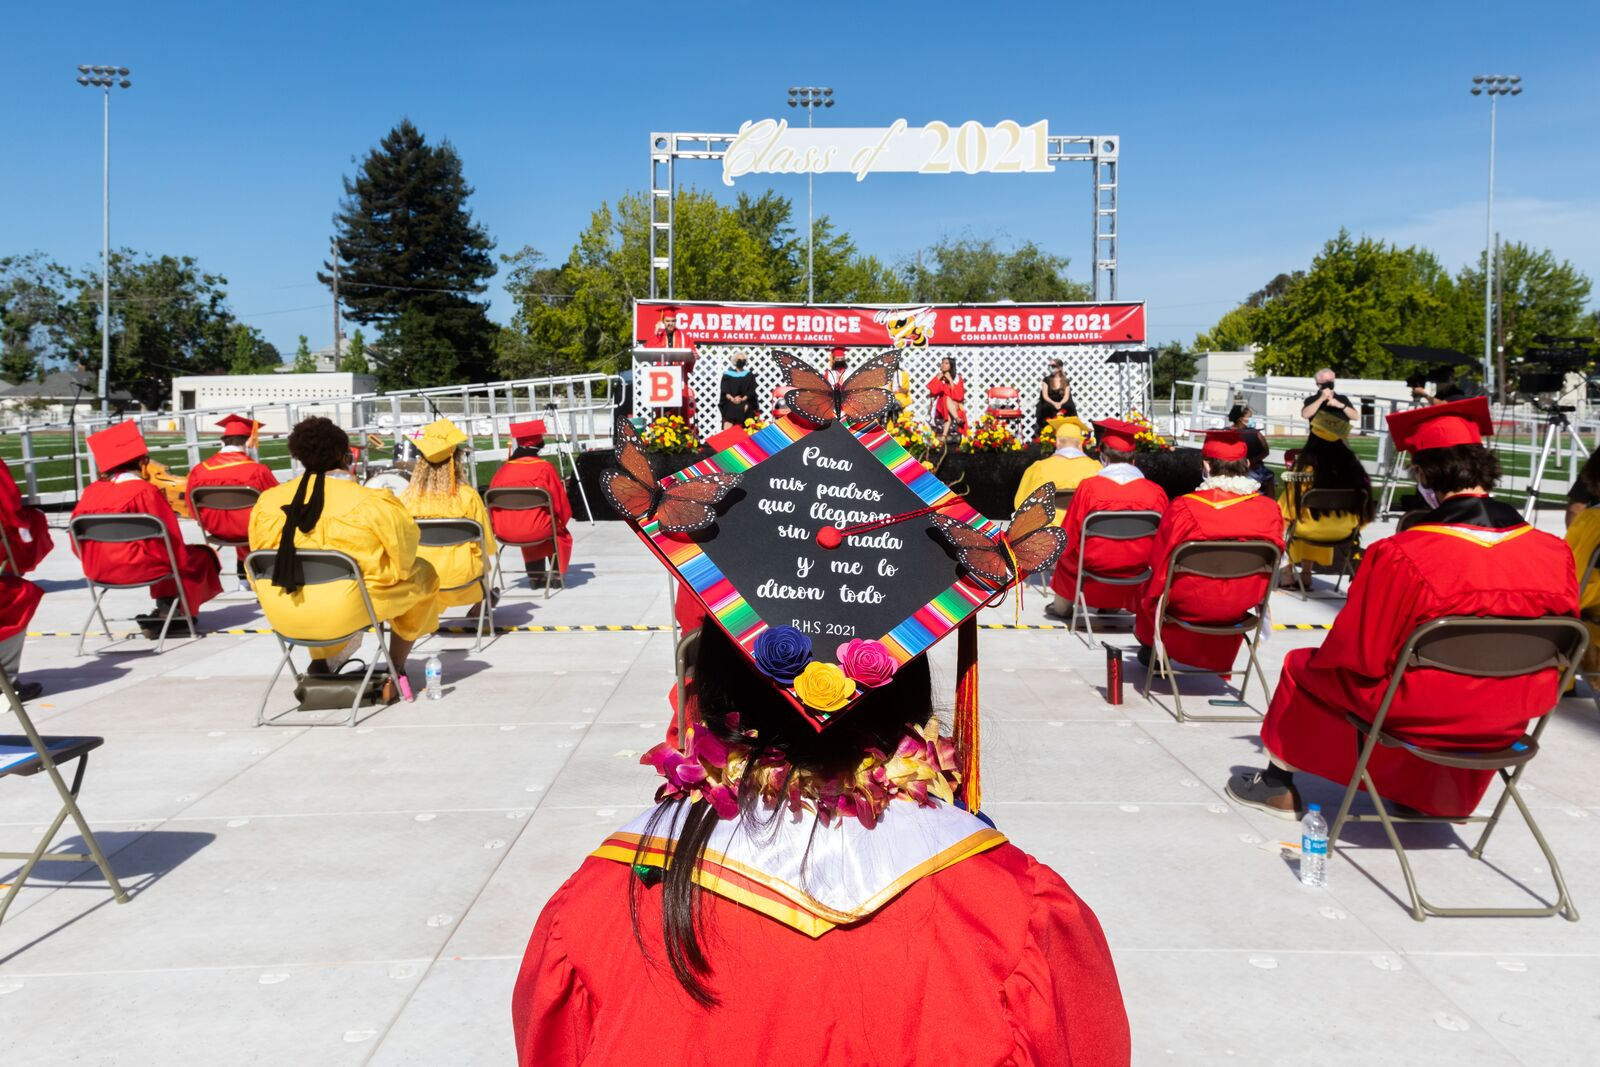 Seniors wear decorated caps during the Academic Choice graduation ceremony at Berkeley High School on June 5, 2021. Credit: Kelly Sullivan